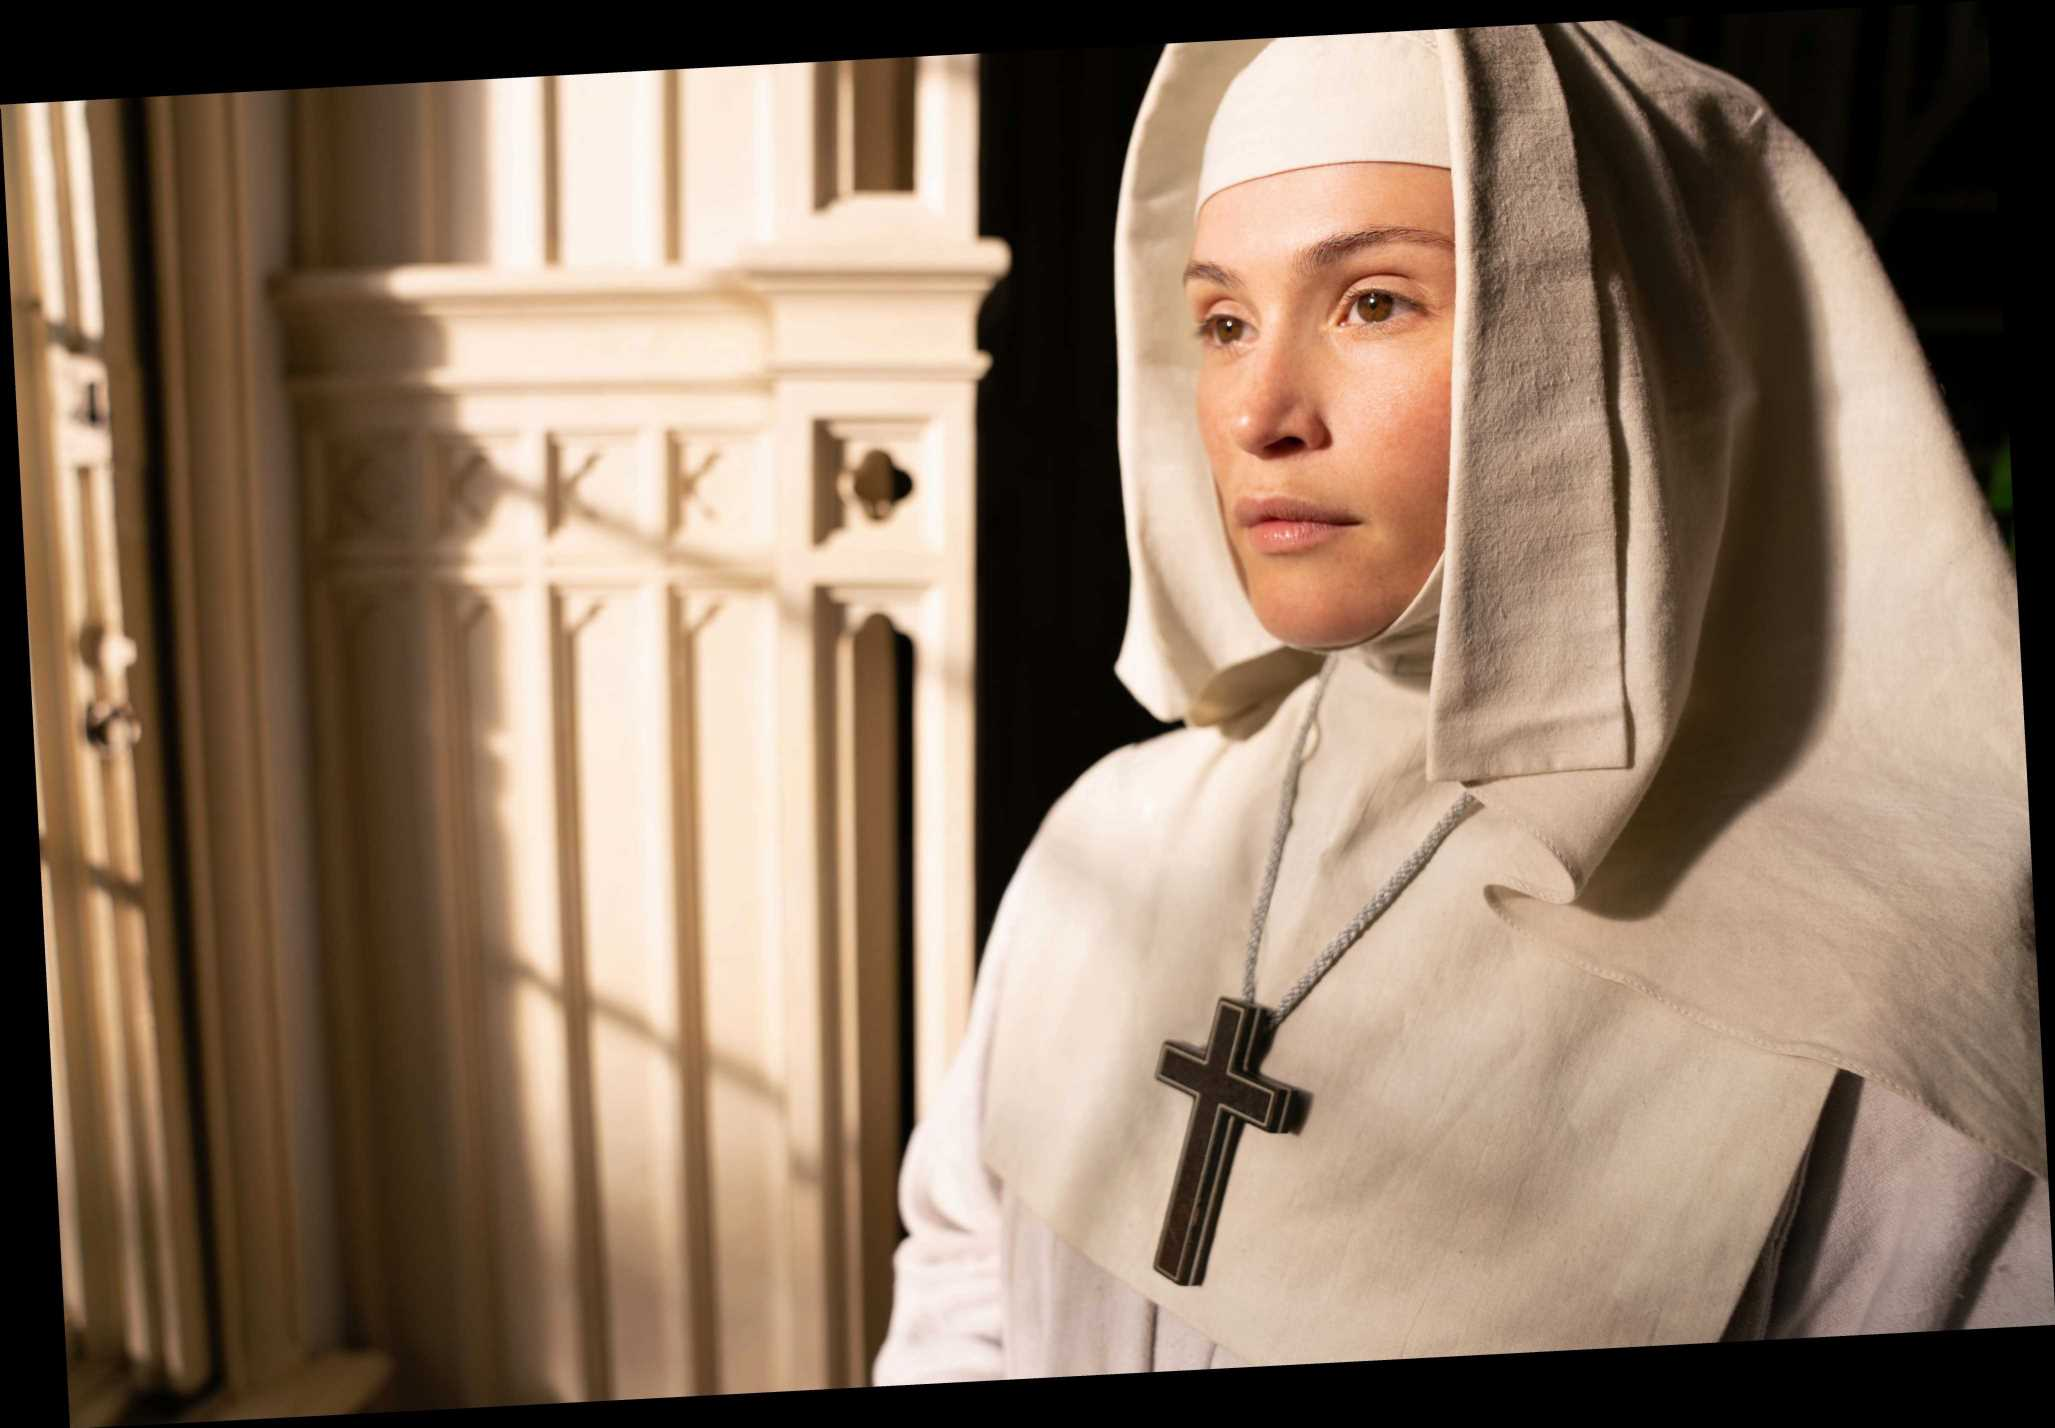 When is Black Narcissus on BBC One and what book is it based on?